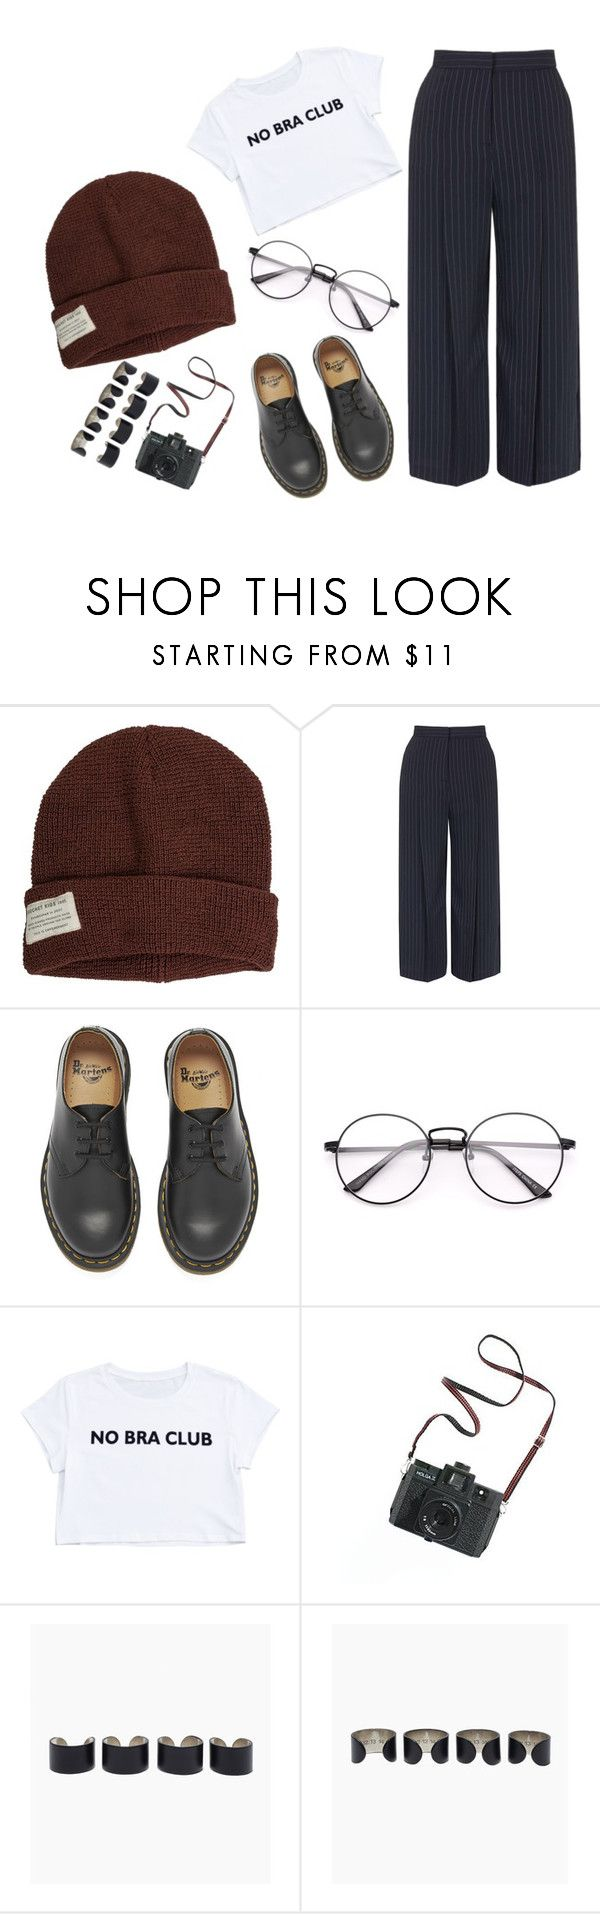 """""""49. It's been a long time coming"""" by unkemptly ❤ liked on Polyvore featuring Krochet Kids, Topshop, Dr. Martens, Madewell and Maison Margiela"""